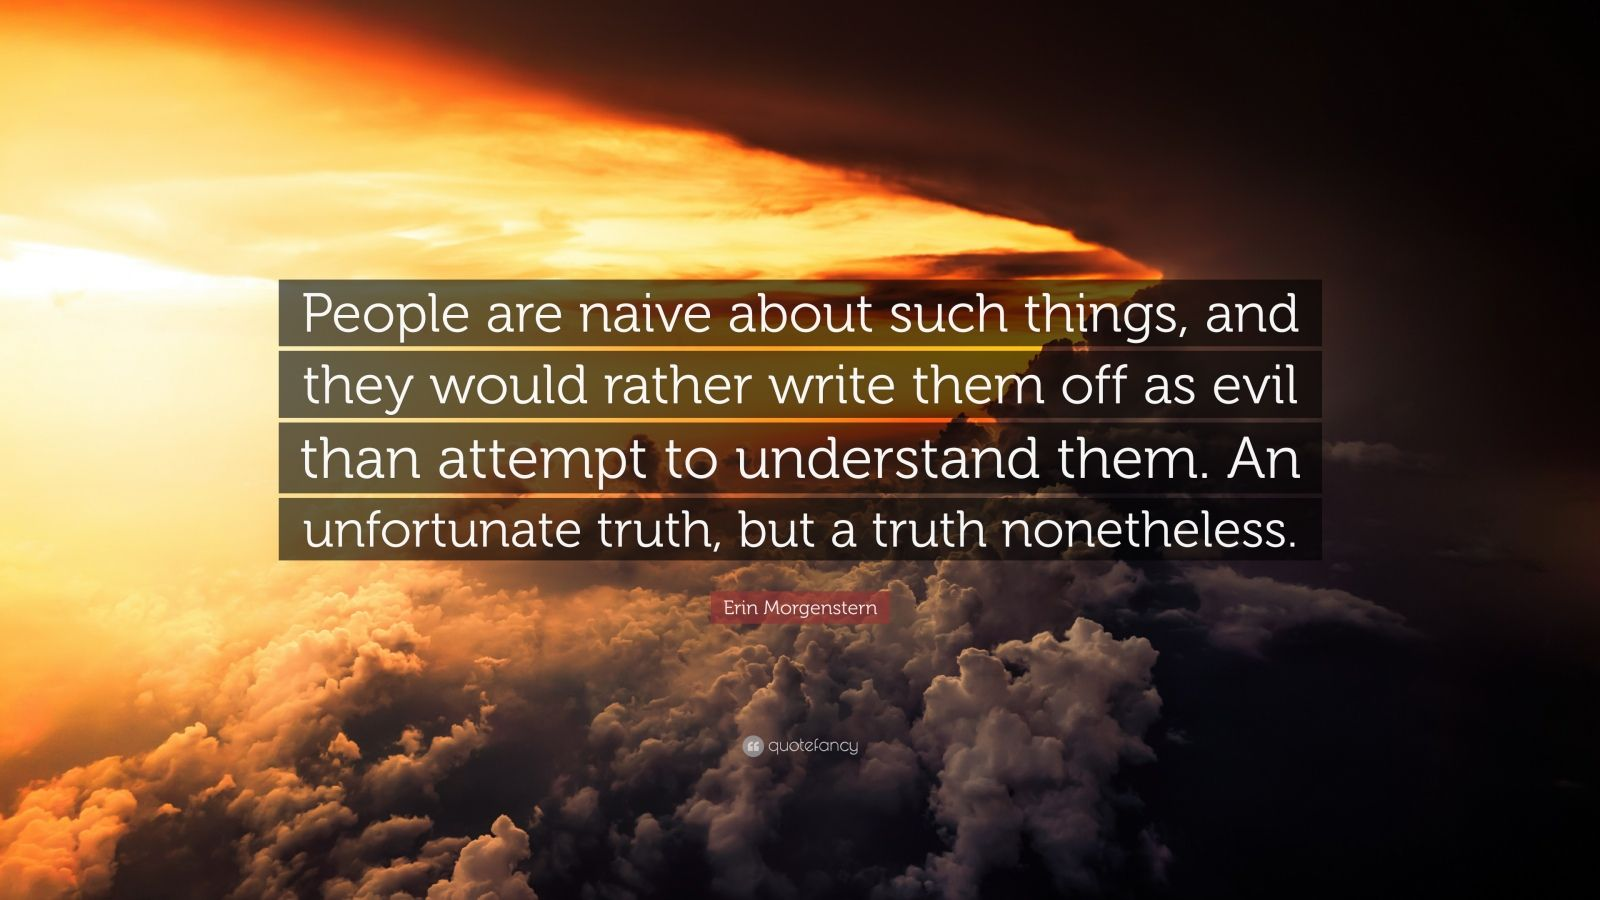 """Erin Morgenstern Quote: """"People are naive about such things, and they would rather write them off as evil than attempt to understand them. An unfortunate truth, but a truth nonetheless."""""""